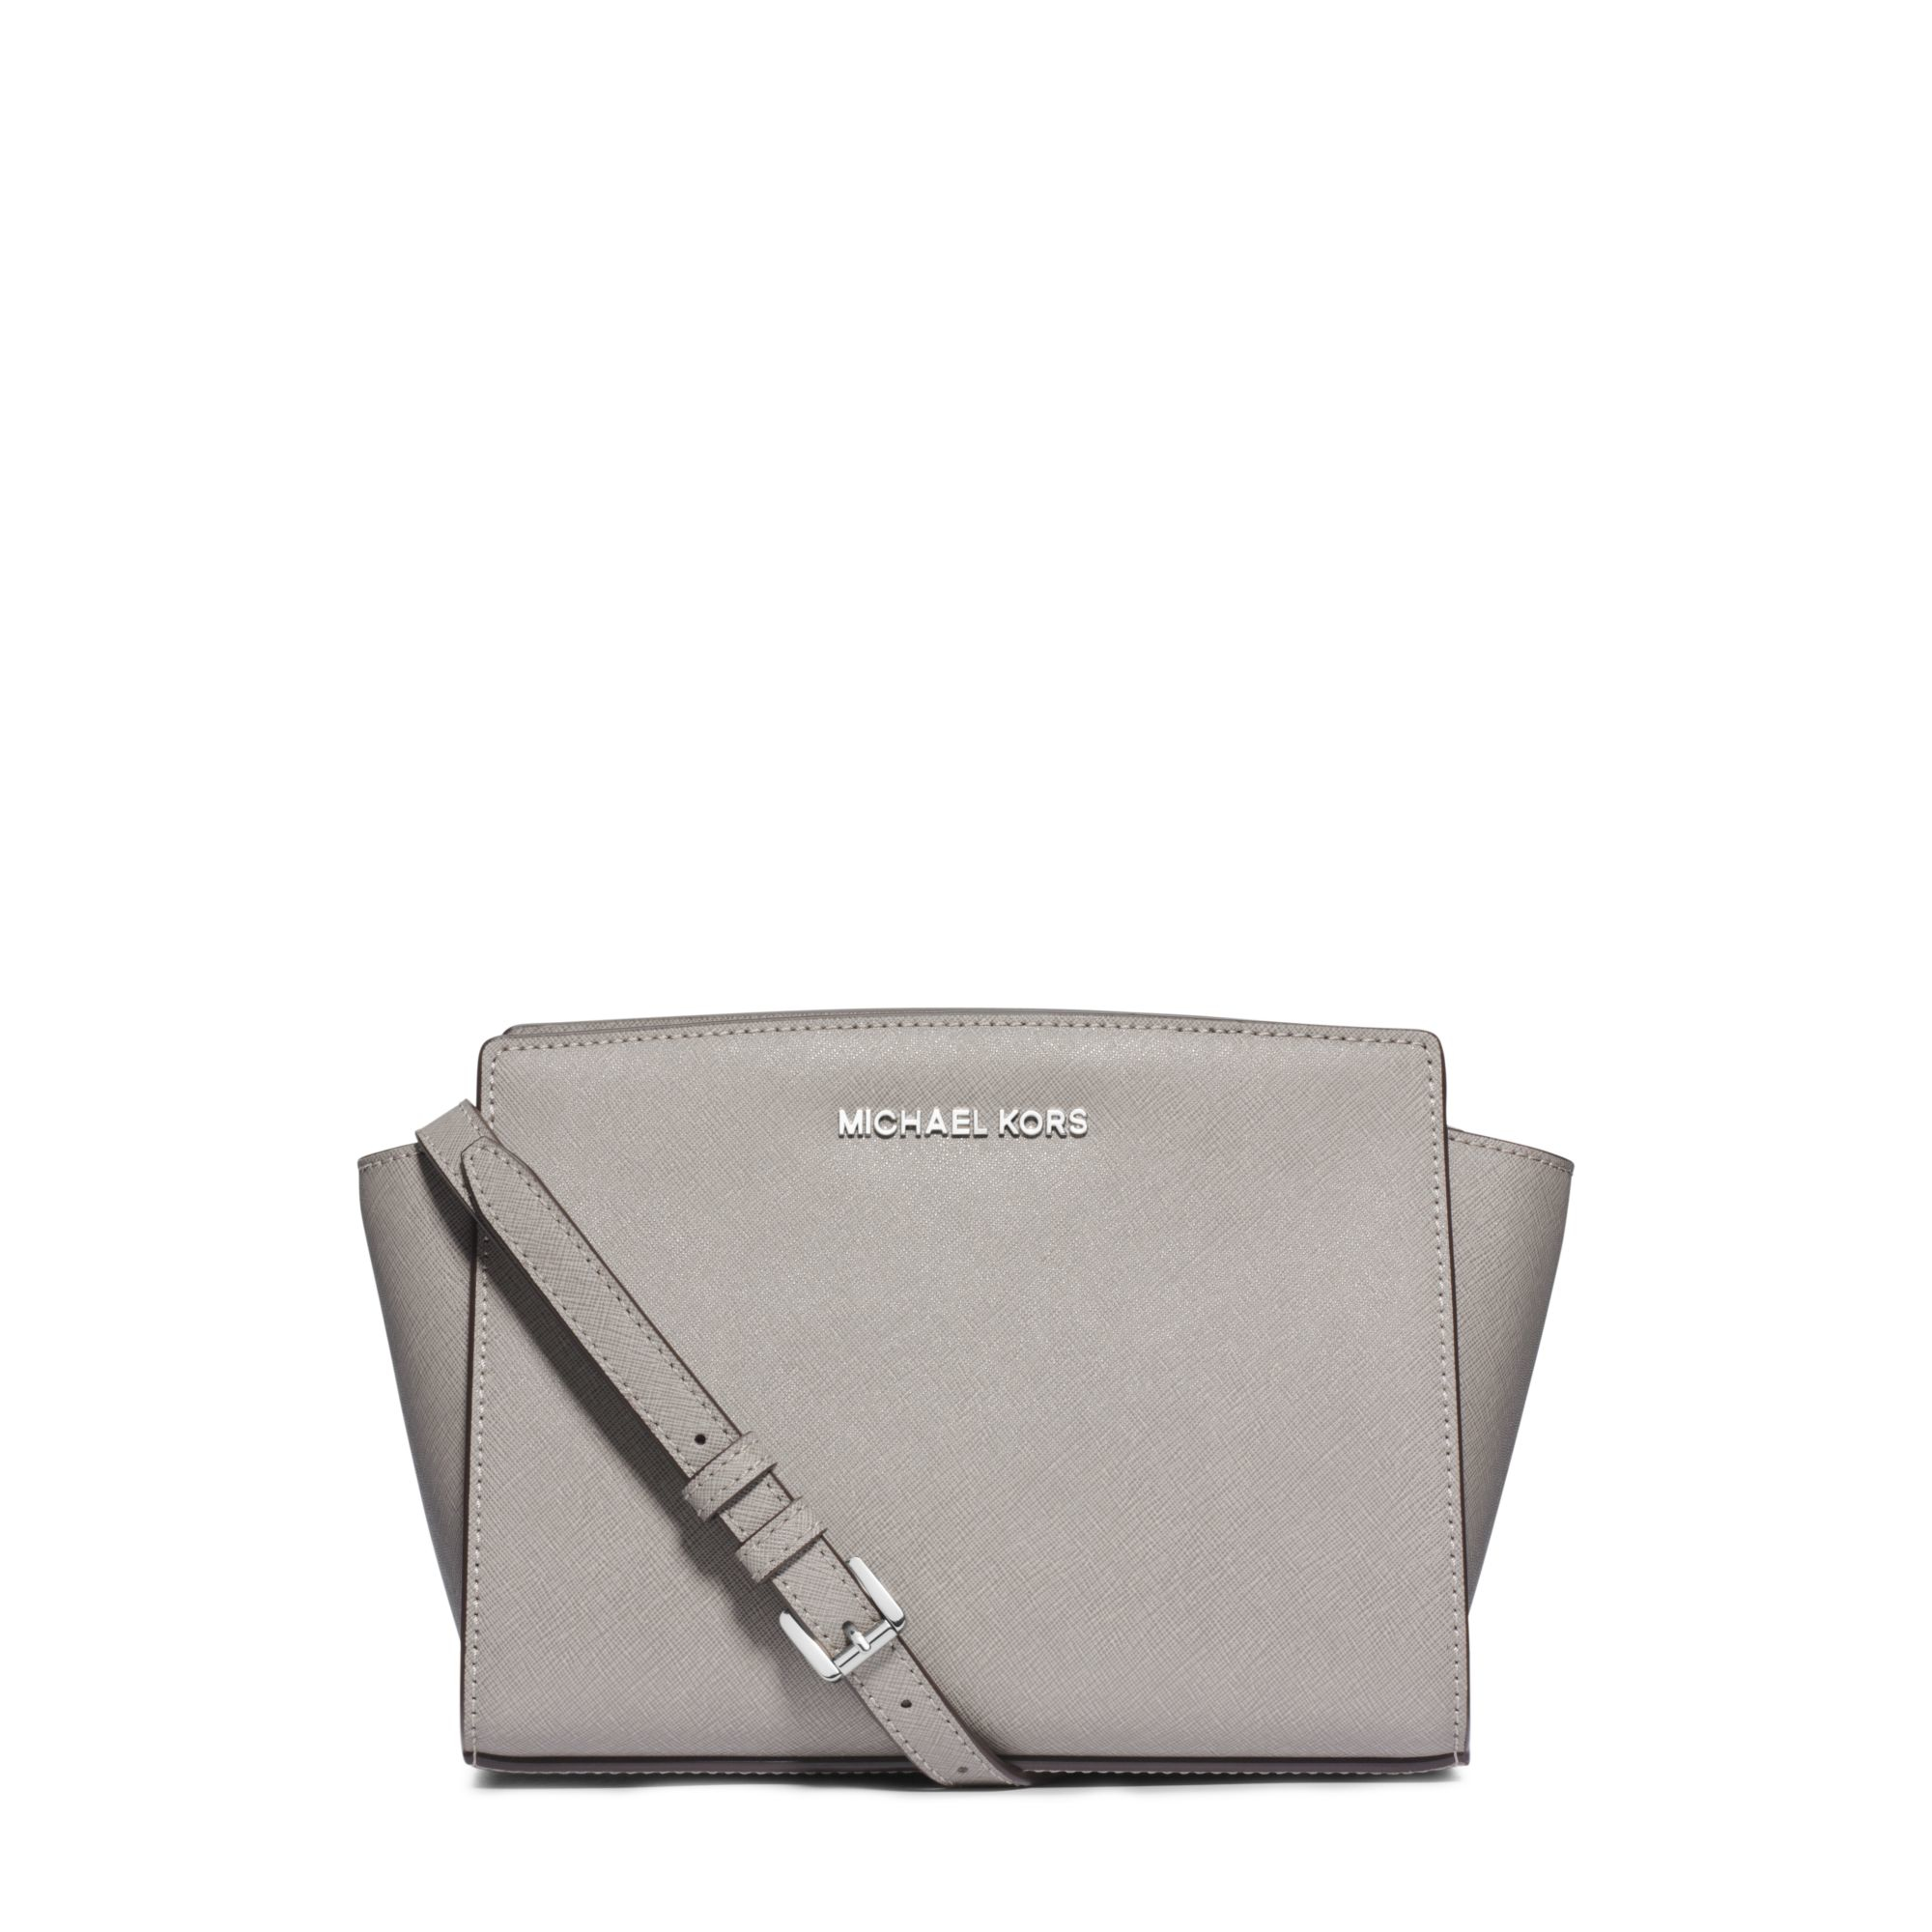 michael kors selma medium saffiano leather messenger in gray pearl grey lyst. Black Bedroom Furniture Sets. Home Design Ideas